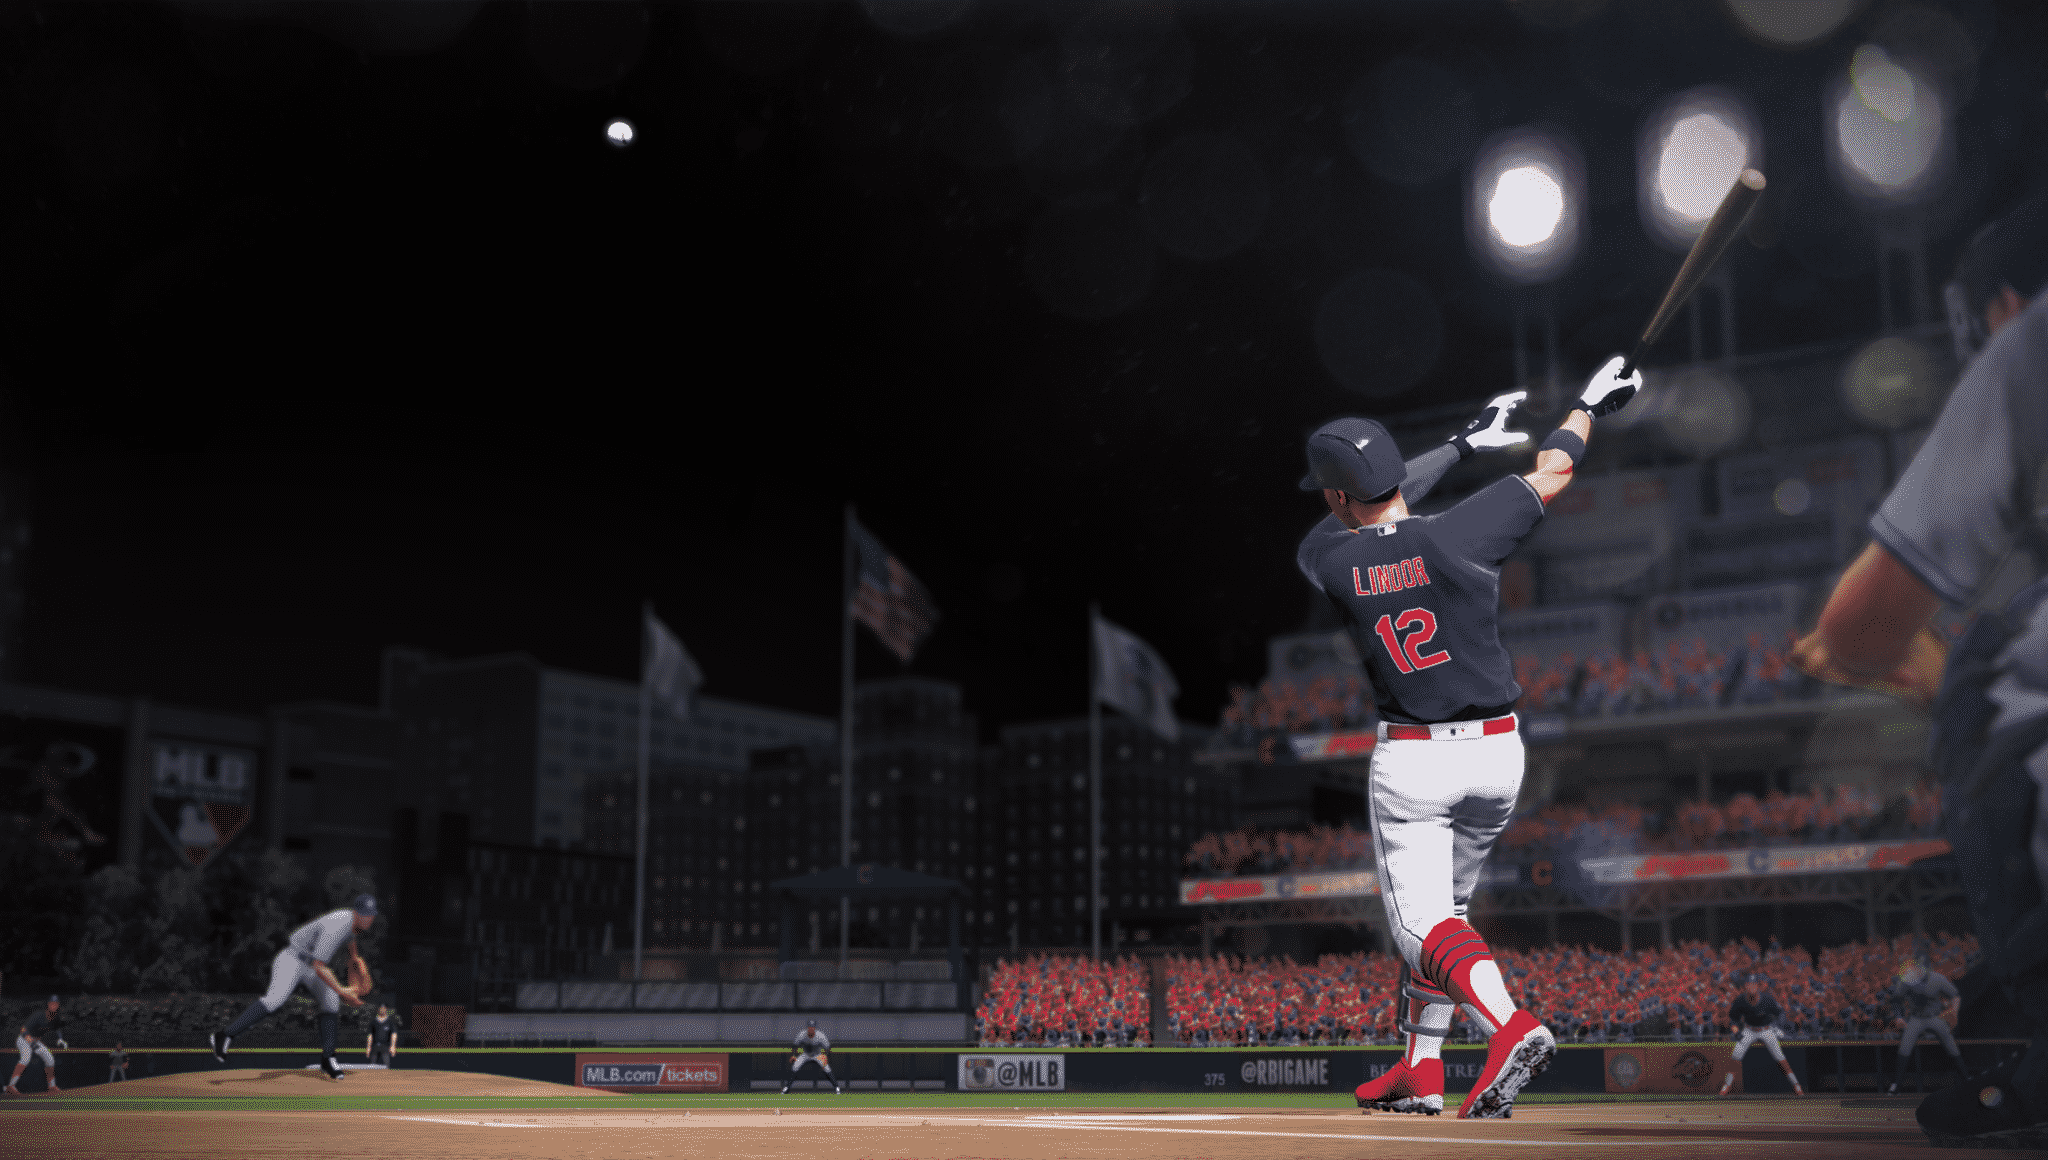 RBI Baseball 18 _ 1_preview